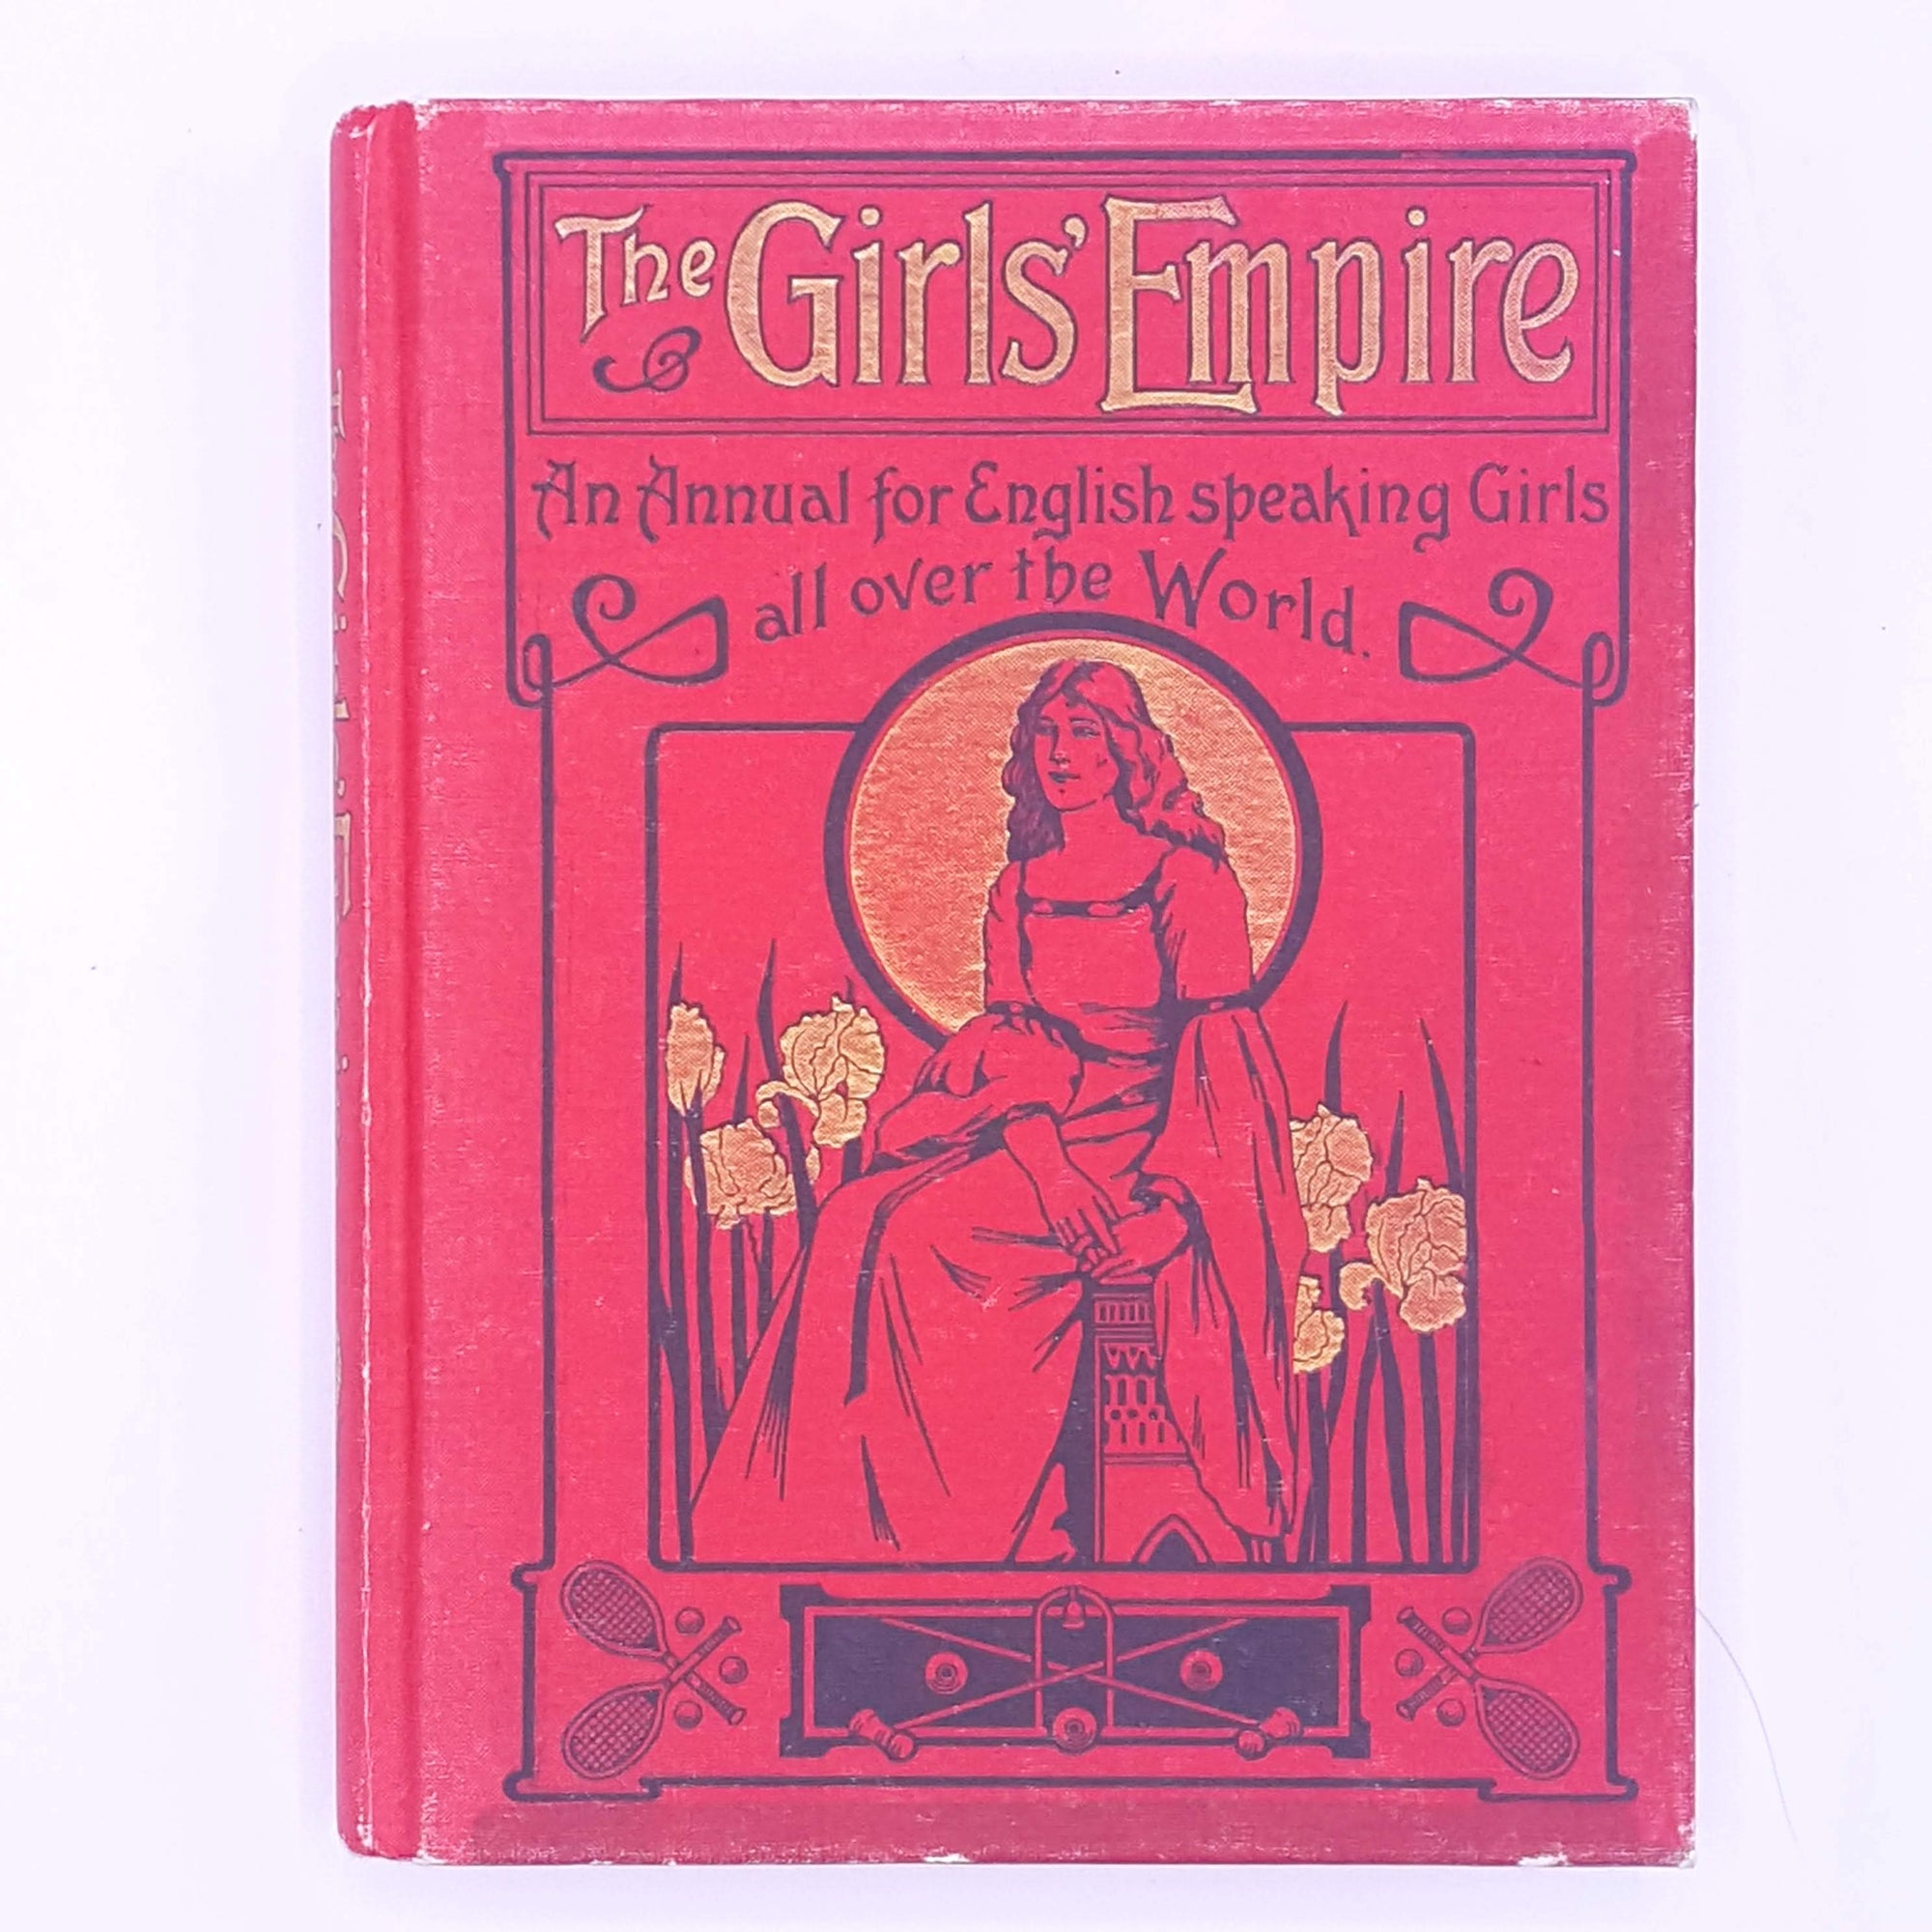 antique-history-classic-books-Christmas-vintage-patterned-the-girls-empire-country-house-library-feminism-for-her-women-old-thrift-christmas-gifts-decorative